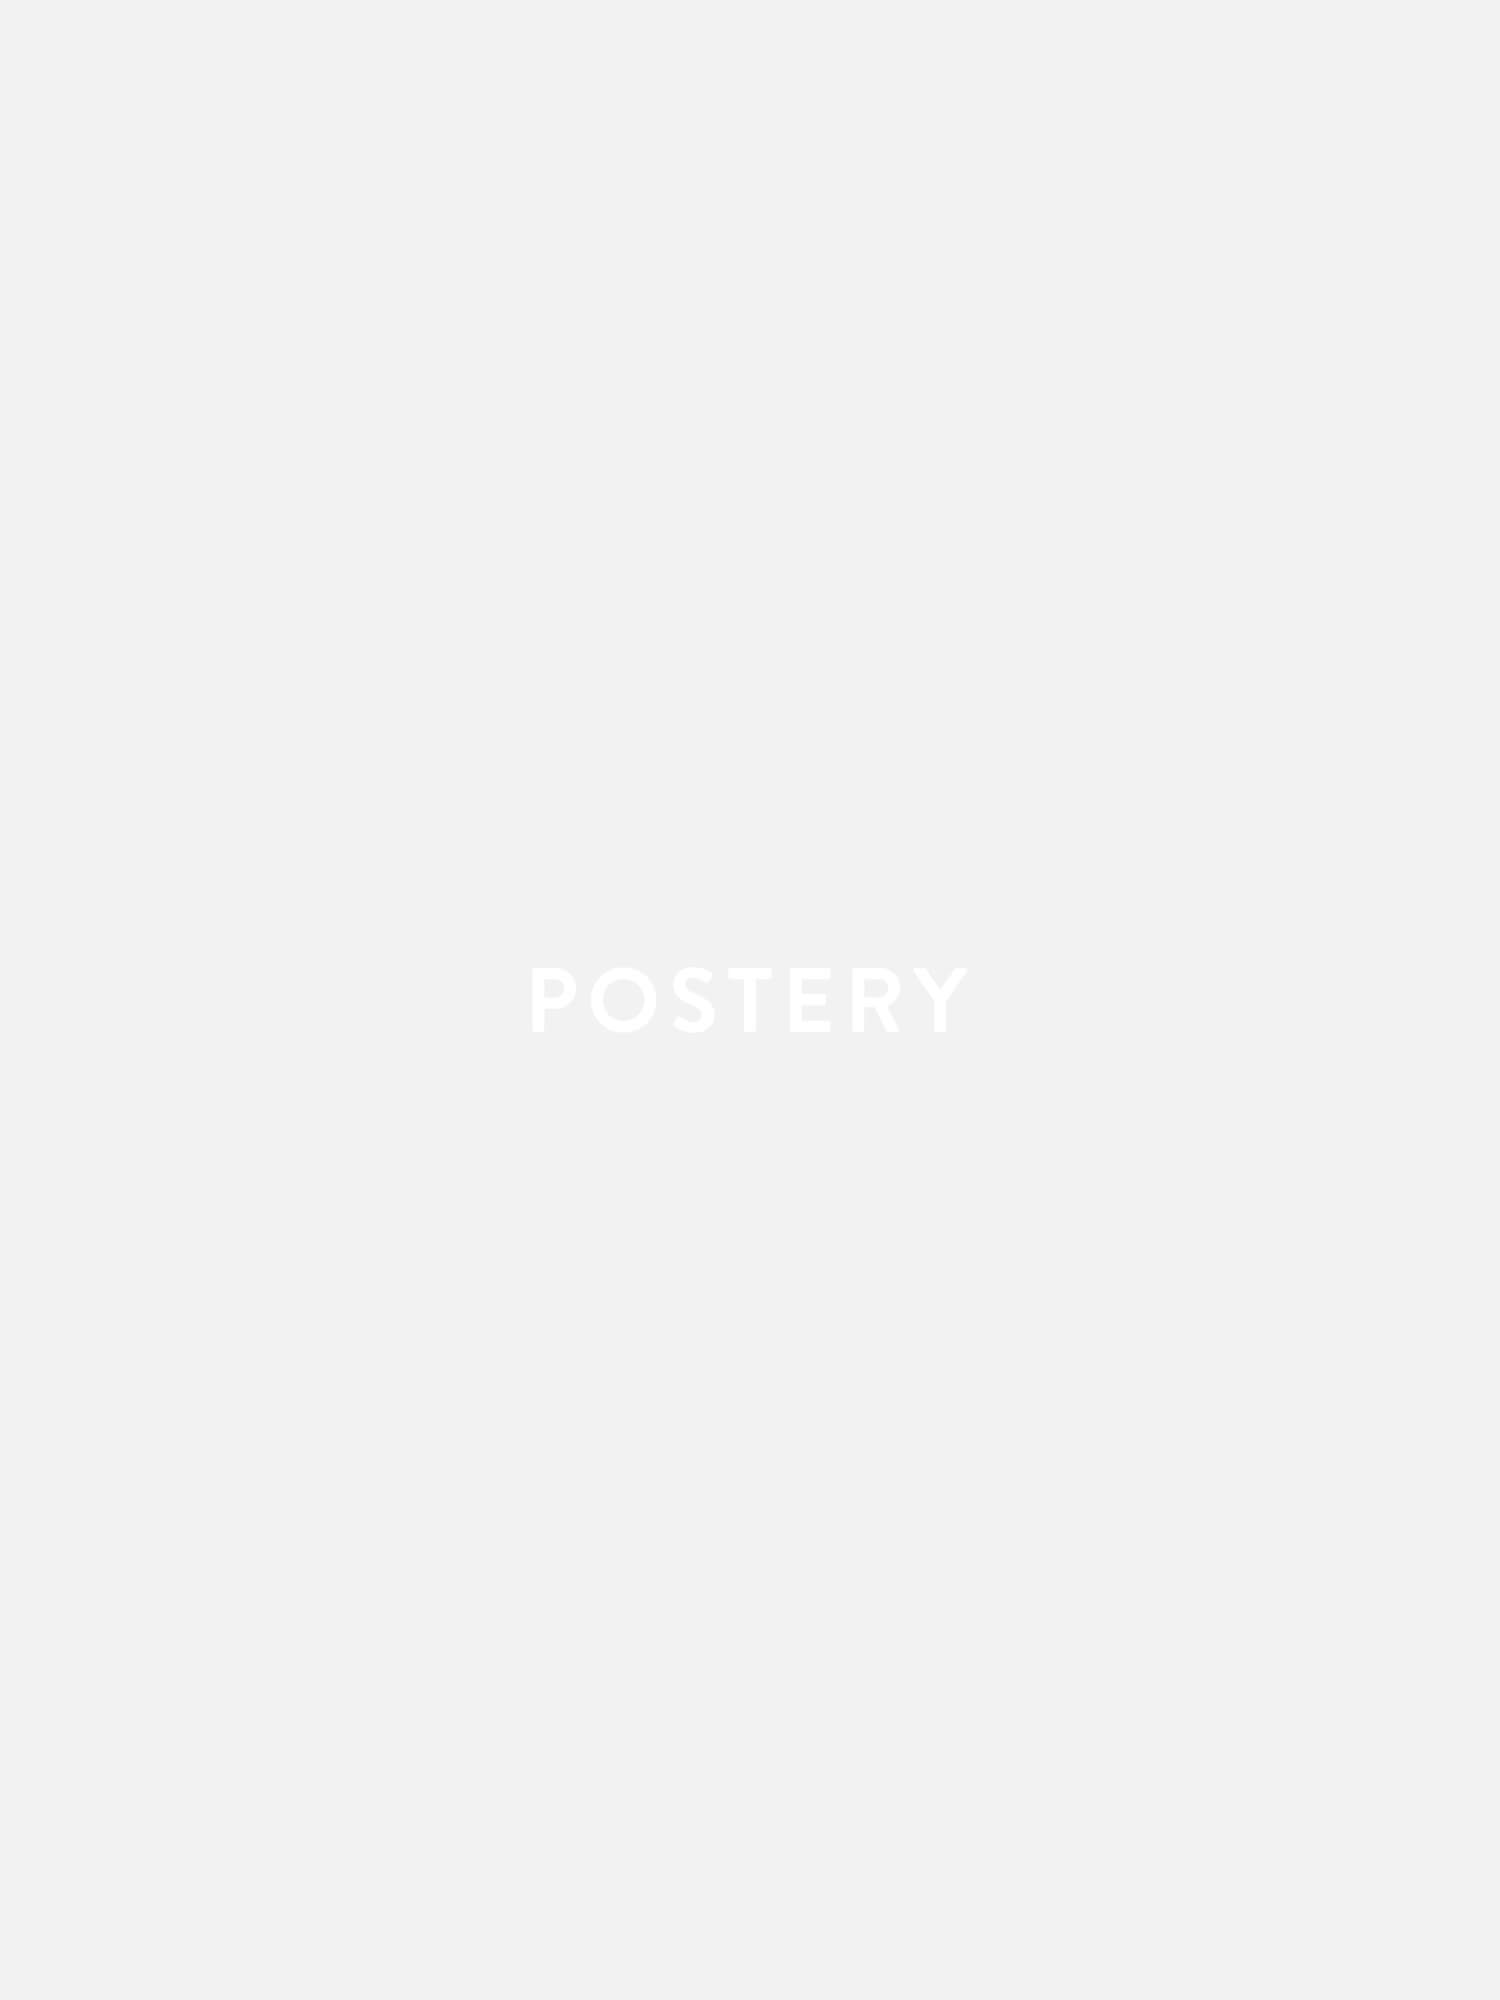 Faroe Islands Rocks Poster